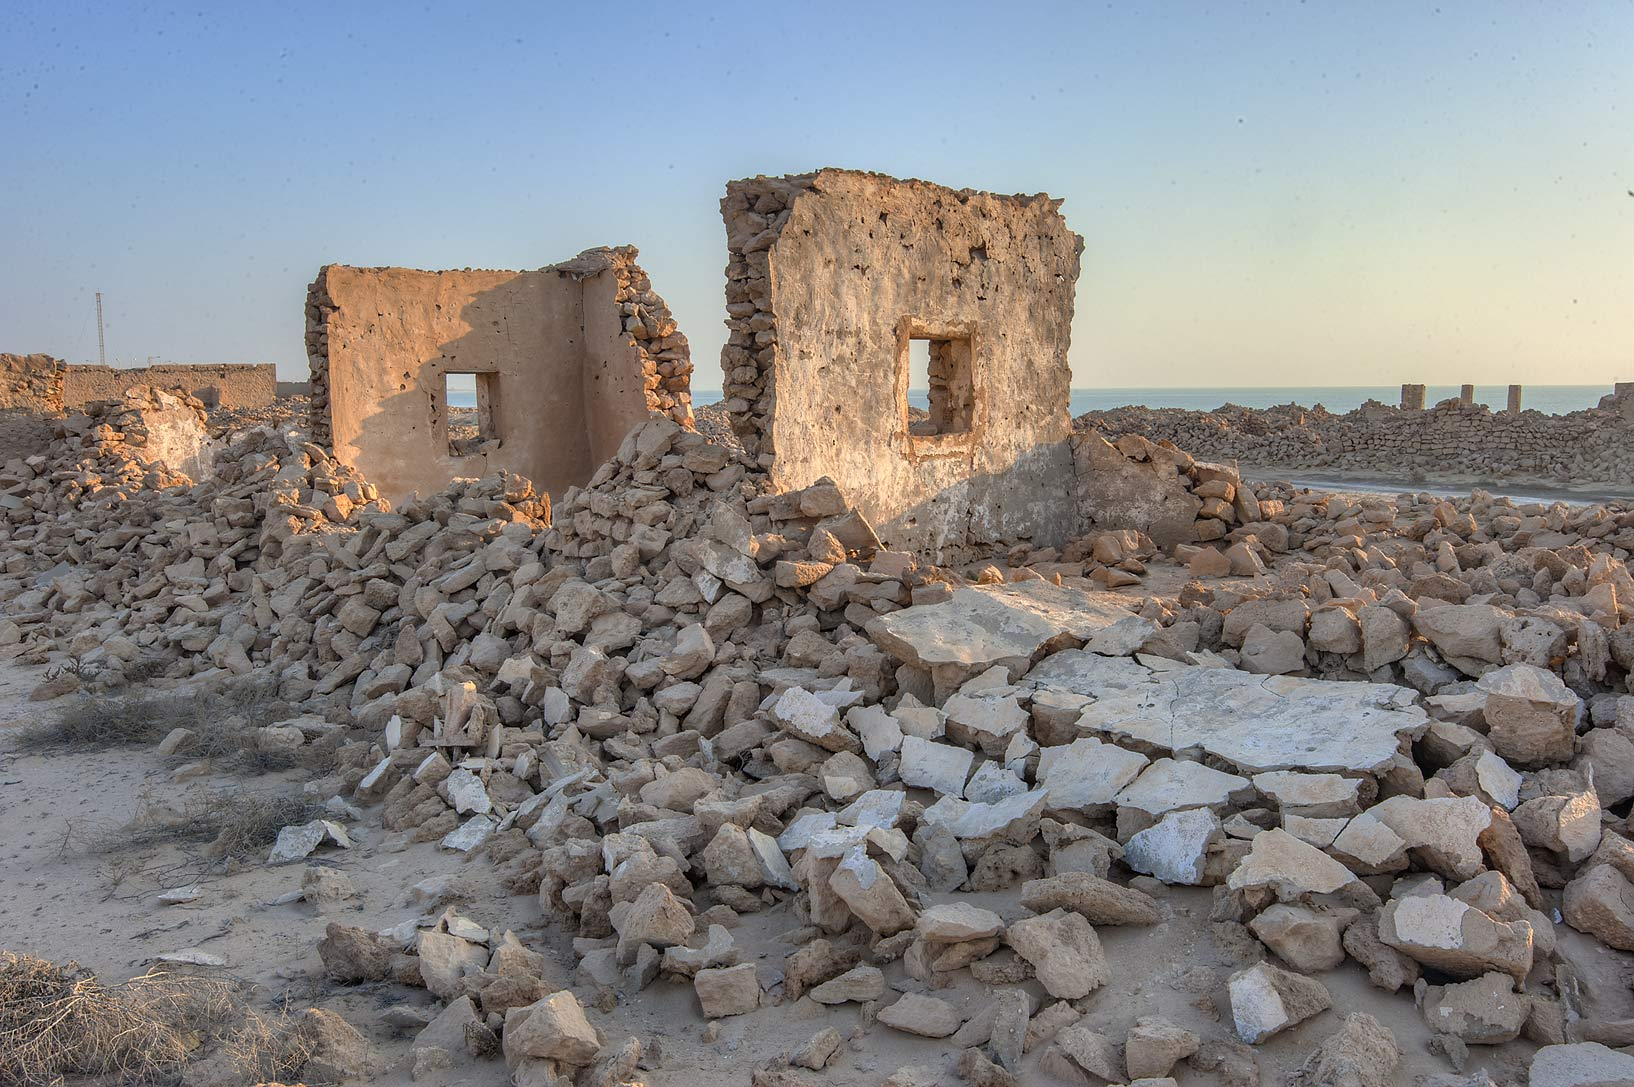 Old stone walls in old fishing village (ghost...eastern coast, Ash Shamal area. Qatar